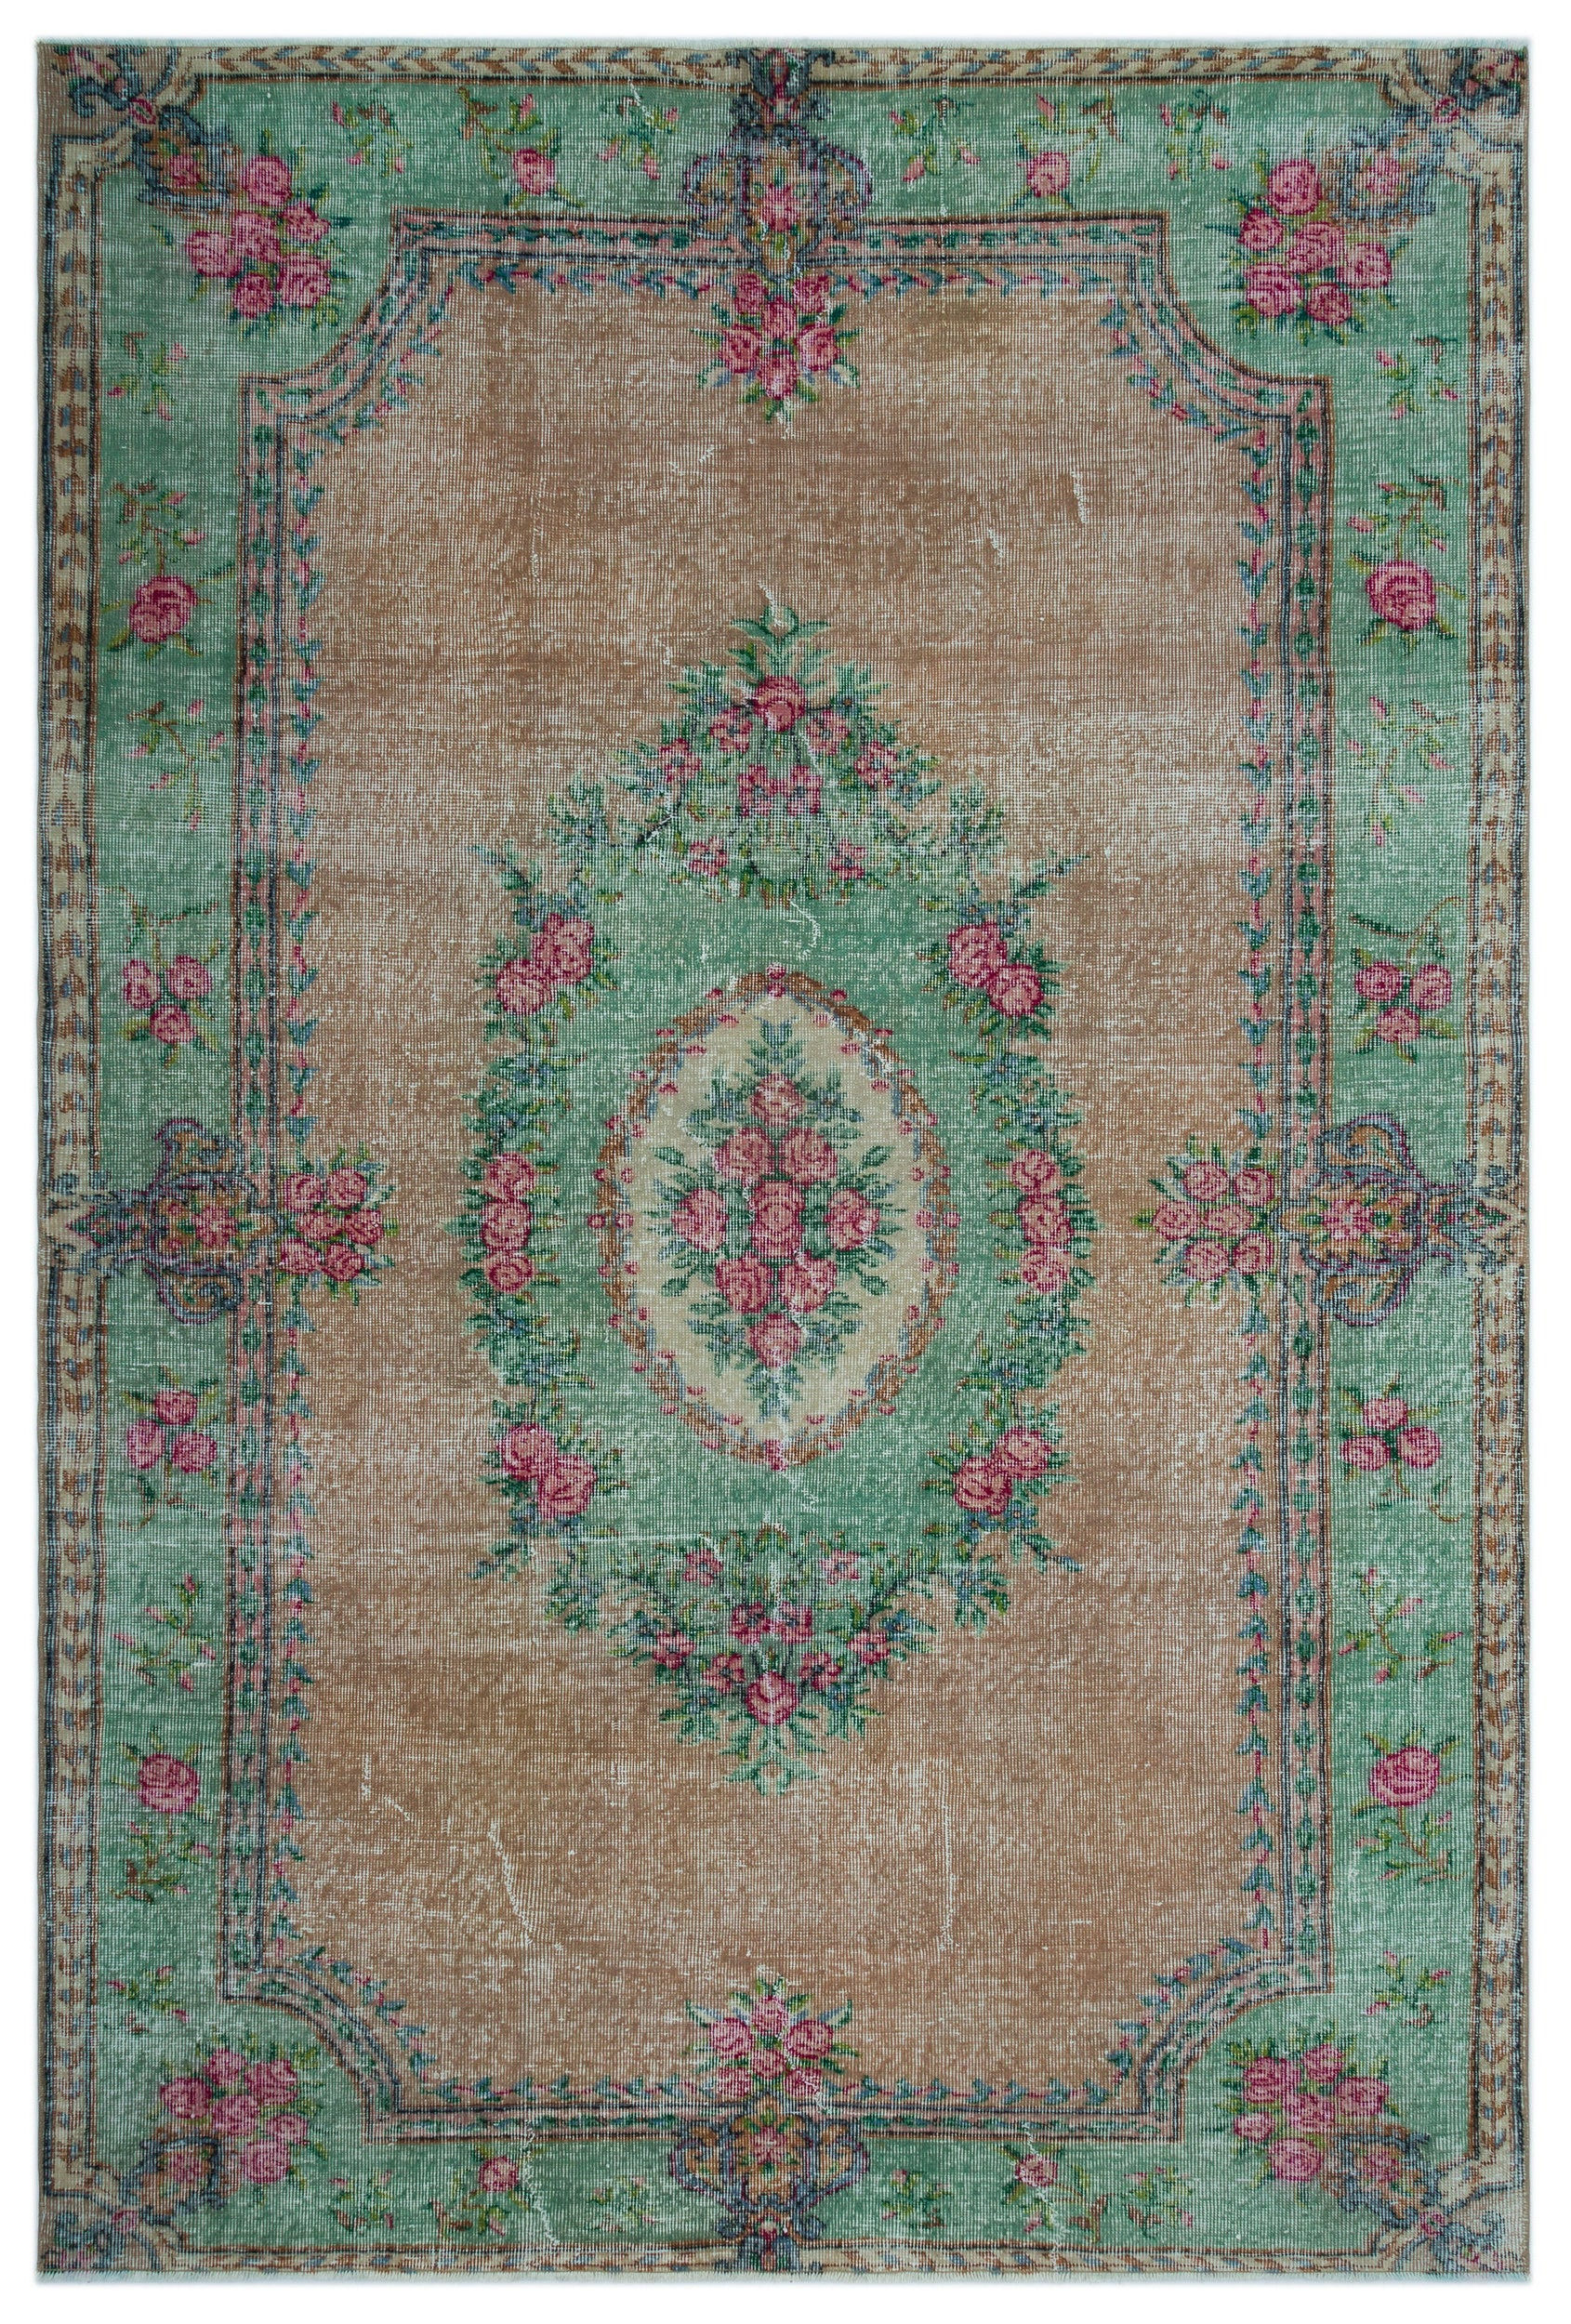 Retro Over Dyed Vintage Rug 6'4'' x 9'6'' ft 194 x 290 cm